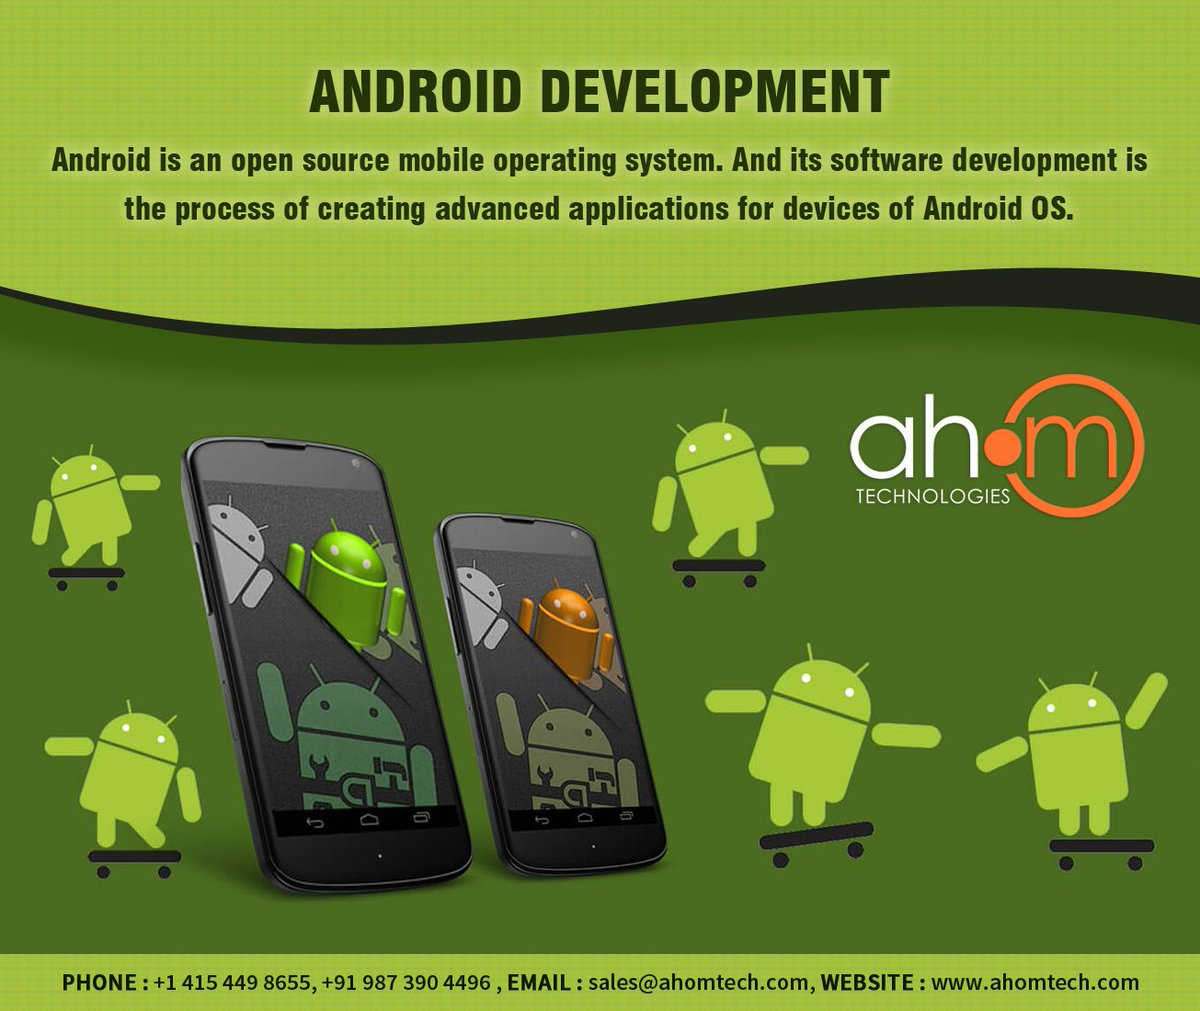 Android apps can be written using Java or Kotlin languages and by the  help of the Android software development kit (SDK).  Read More at : https://www.ahomtech.com/android-development-services-india/… #Android #AndroidDevelopment #Technology #AndroidApps #MobileAppDevelopment #MobileTechnology #Ahom #AhomTech